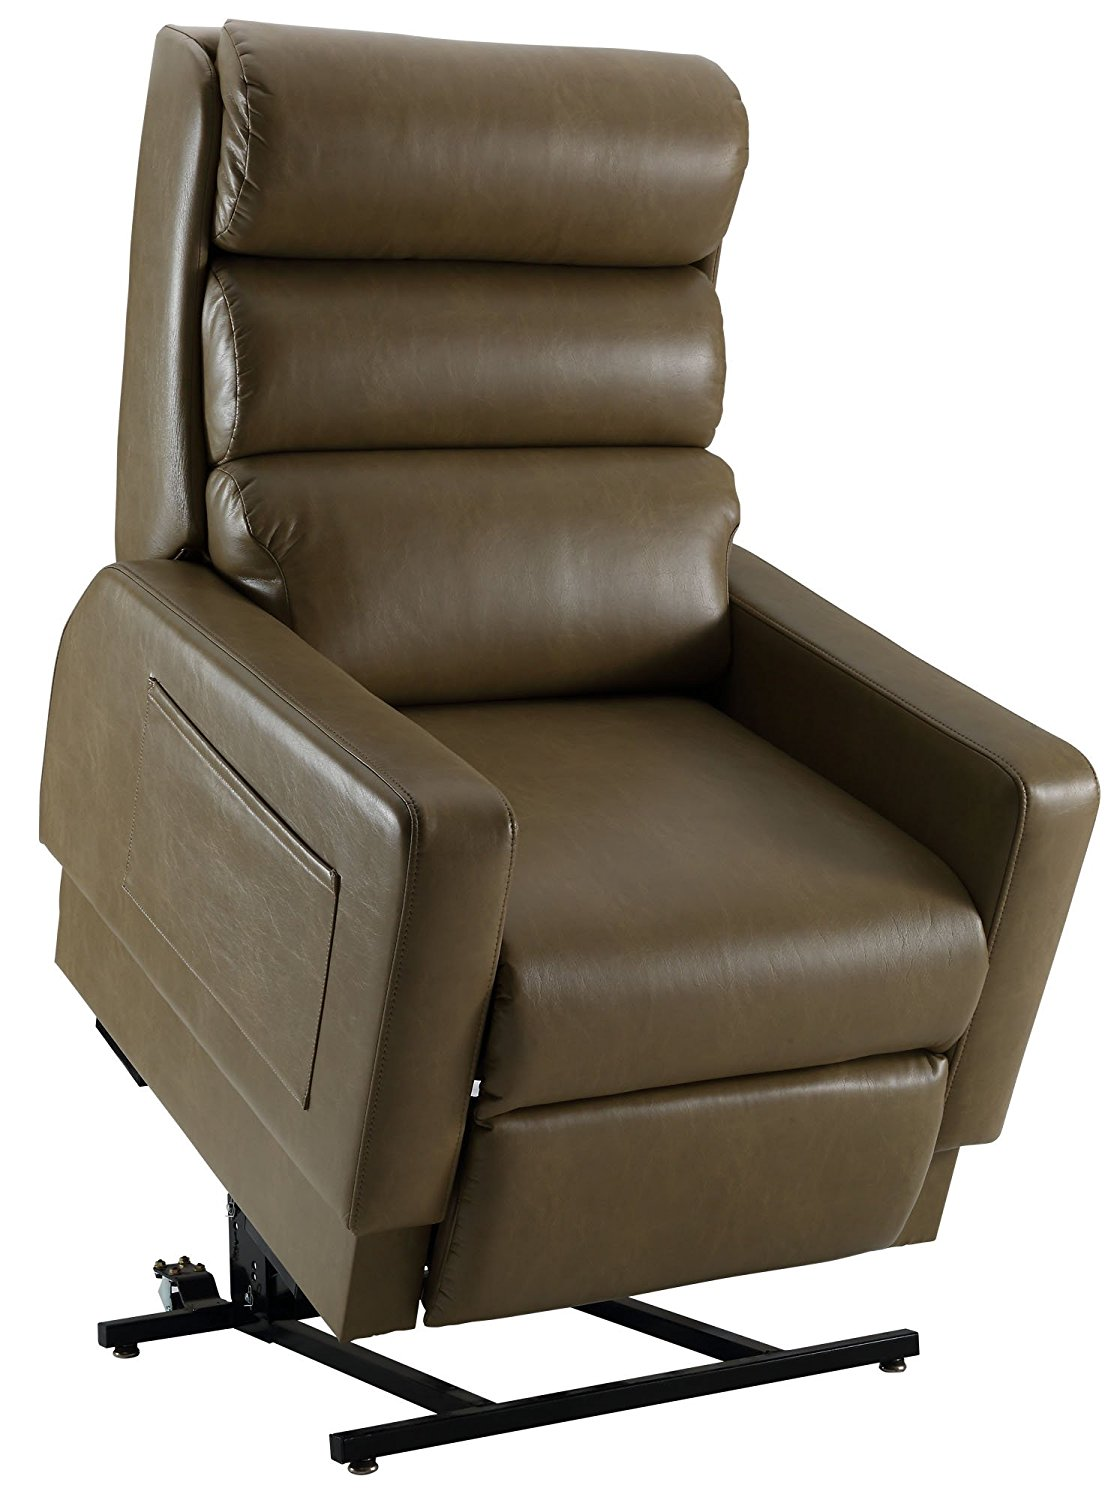 Cozzia MC 520 Lay Flat Infinite Position Lift Chair Recliner